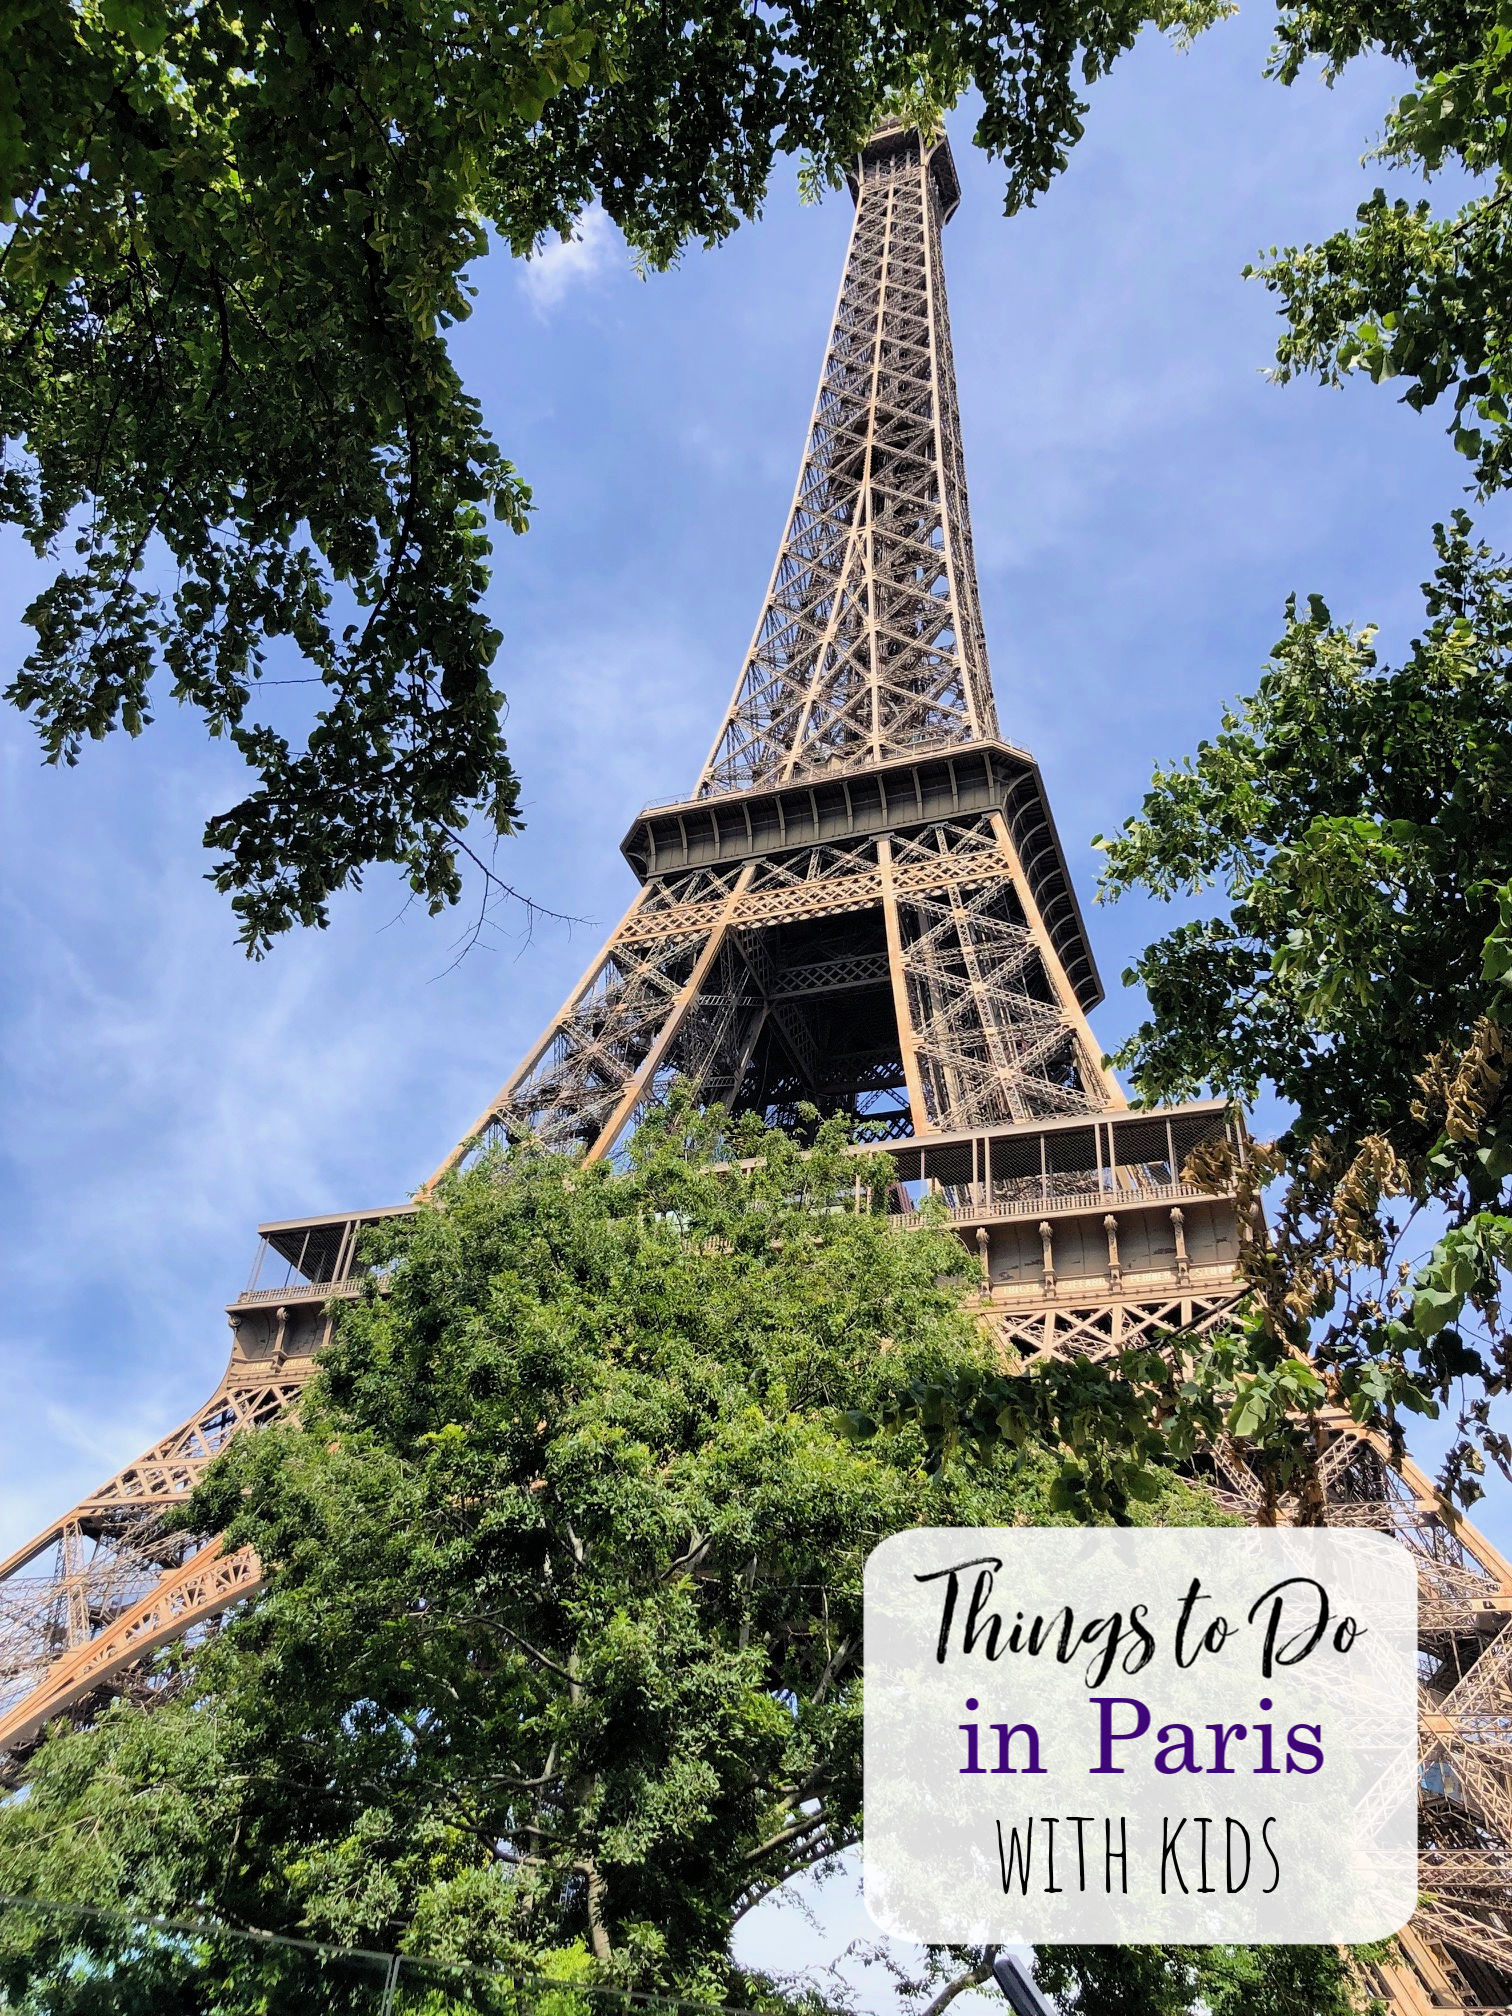 Things to do in Paris with Kids-If you're planning a trip to France with kids in tow, these fun things to do in Paris with kids will help you make the most of your trip. #travel #travelwithkids #paris #france